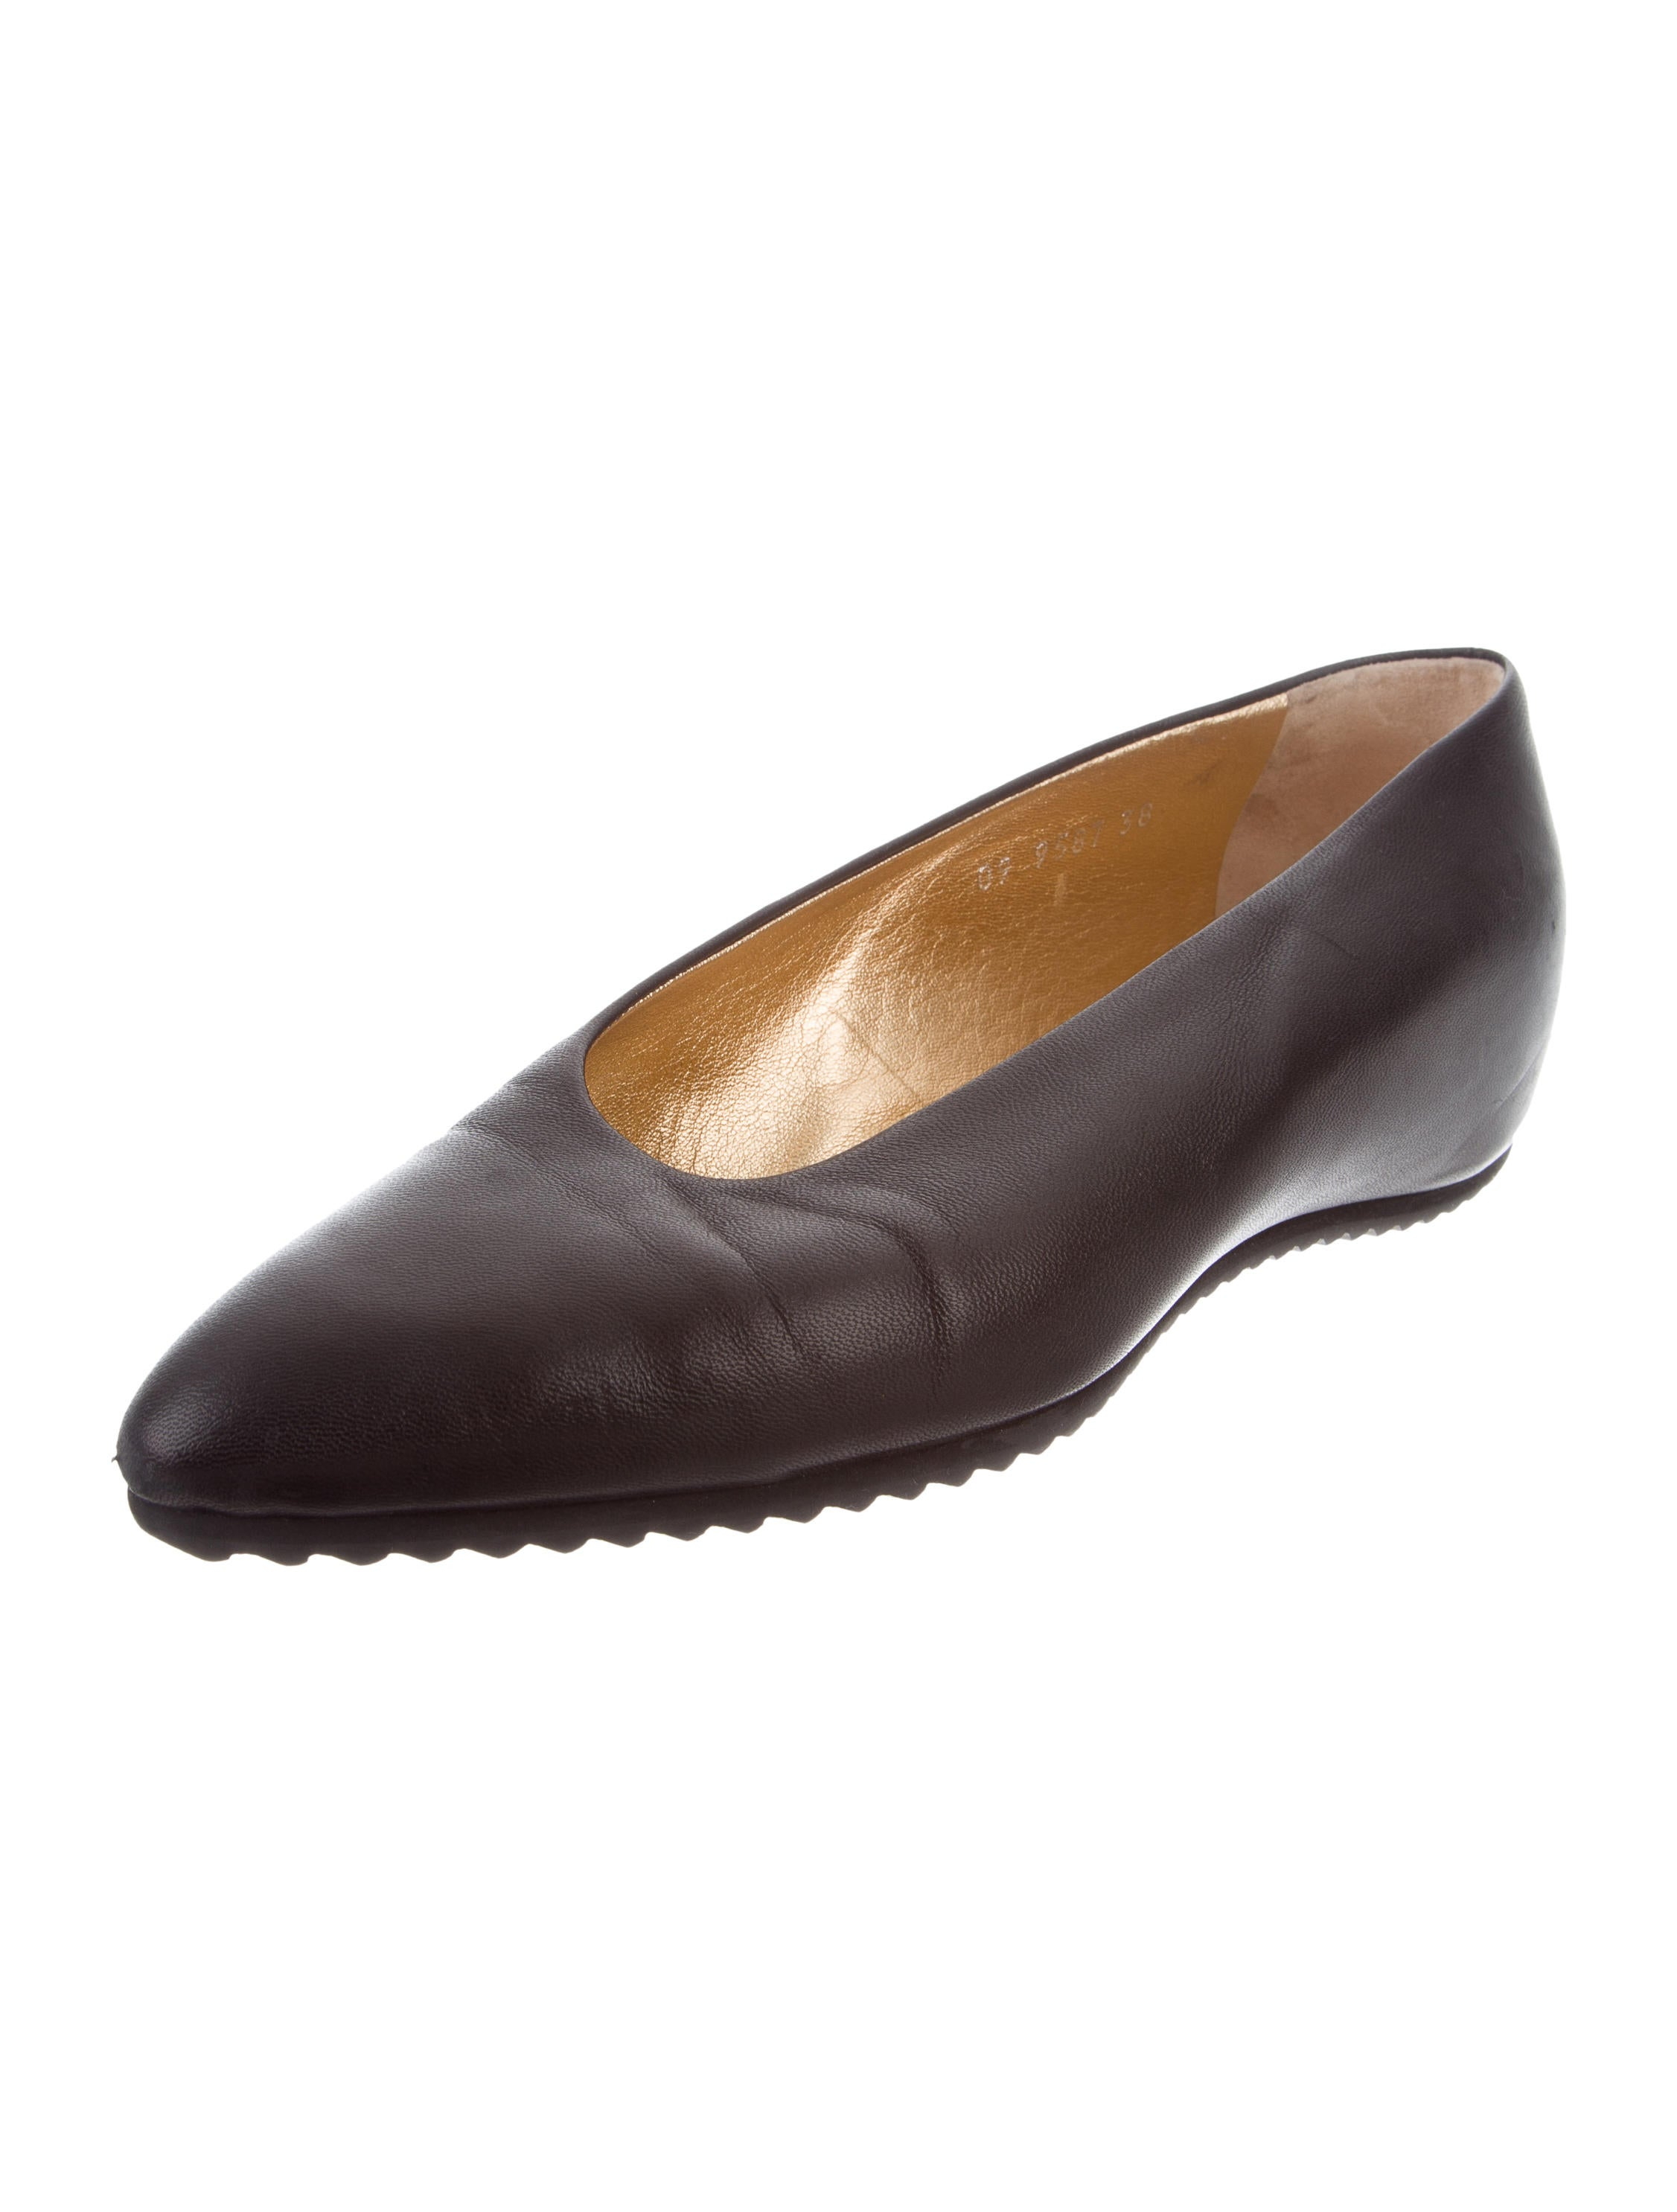 discount visa payment Walter Steiger Leather Pointed-Toe Flats discounts for sale footaction cheap price free shipping low price discount best place XwSj7ykp